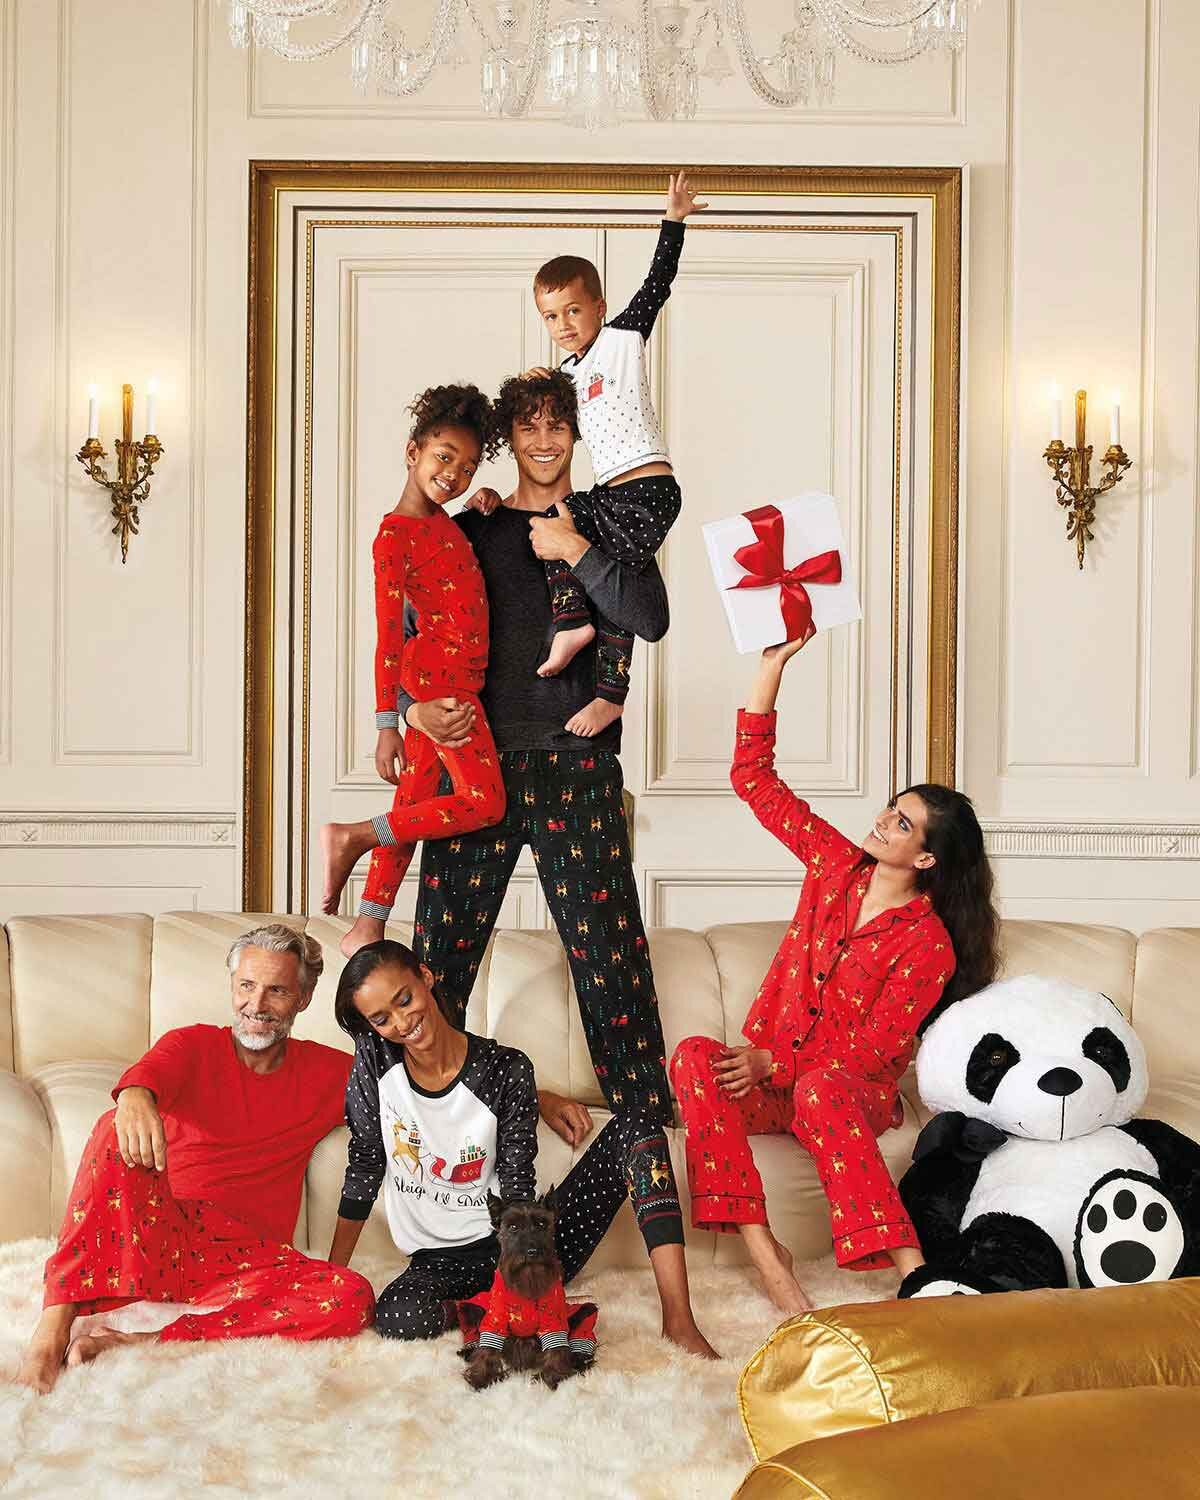 Neiman Marcus gifts family celebrating together